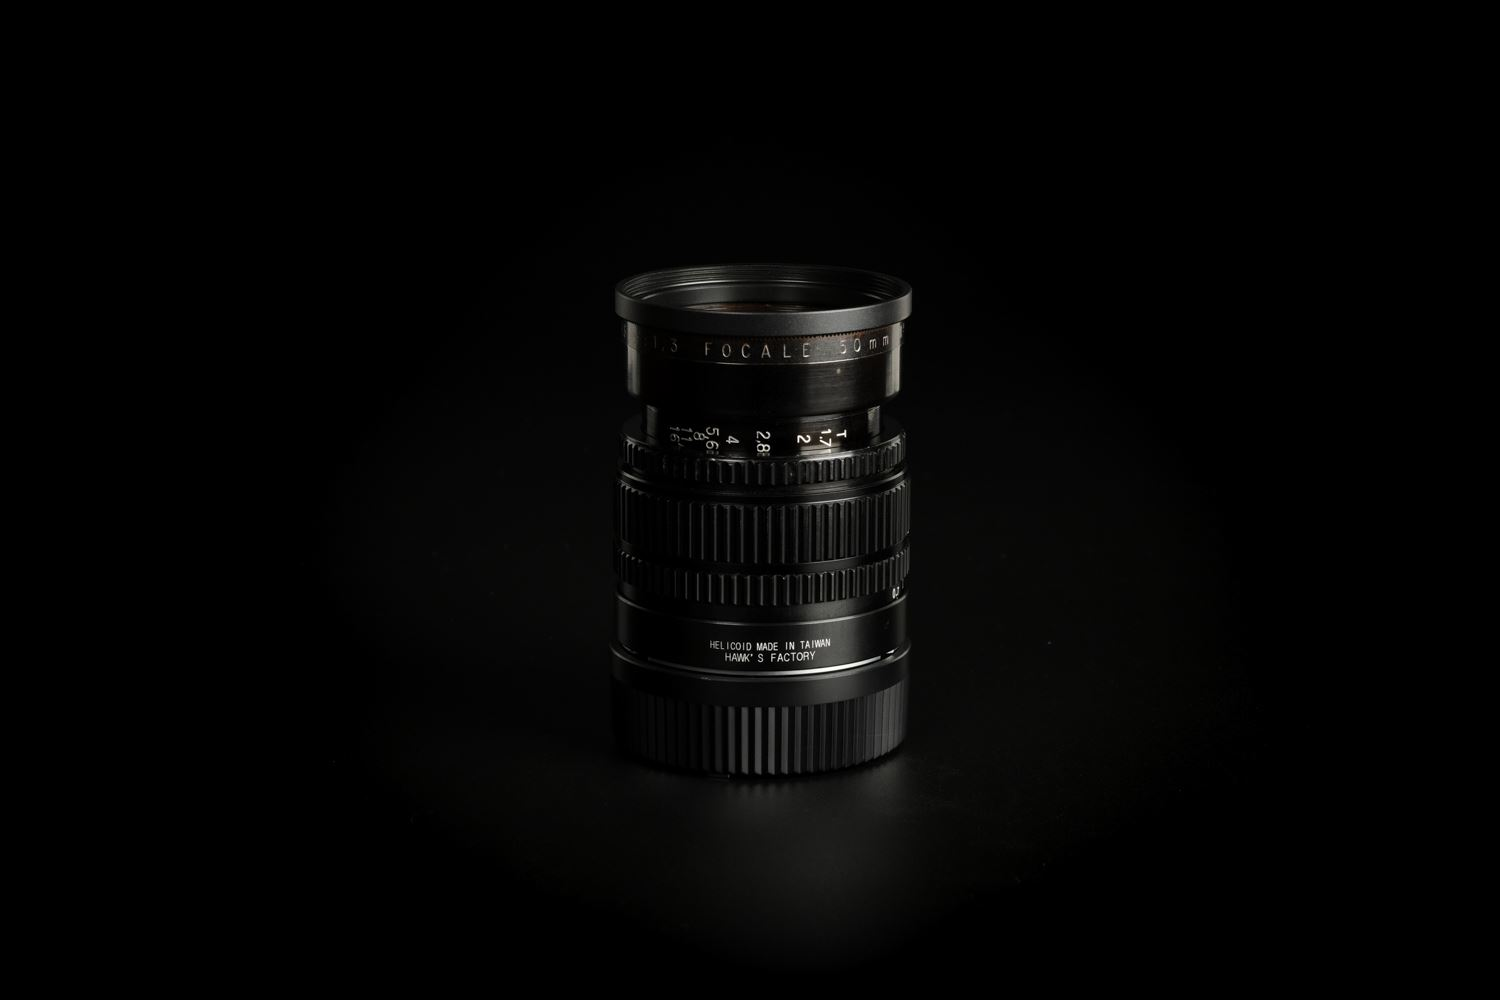 Picture of Kinoptik Fulgior Focale 50mm f/1.3 Modified to Leica M